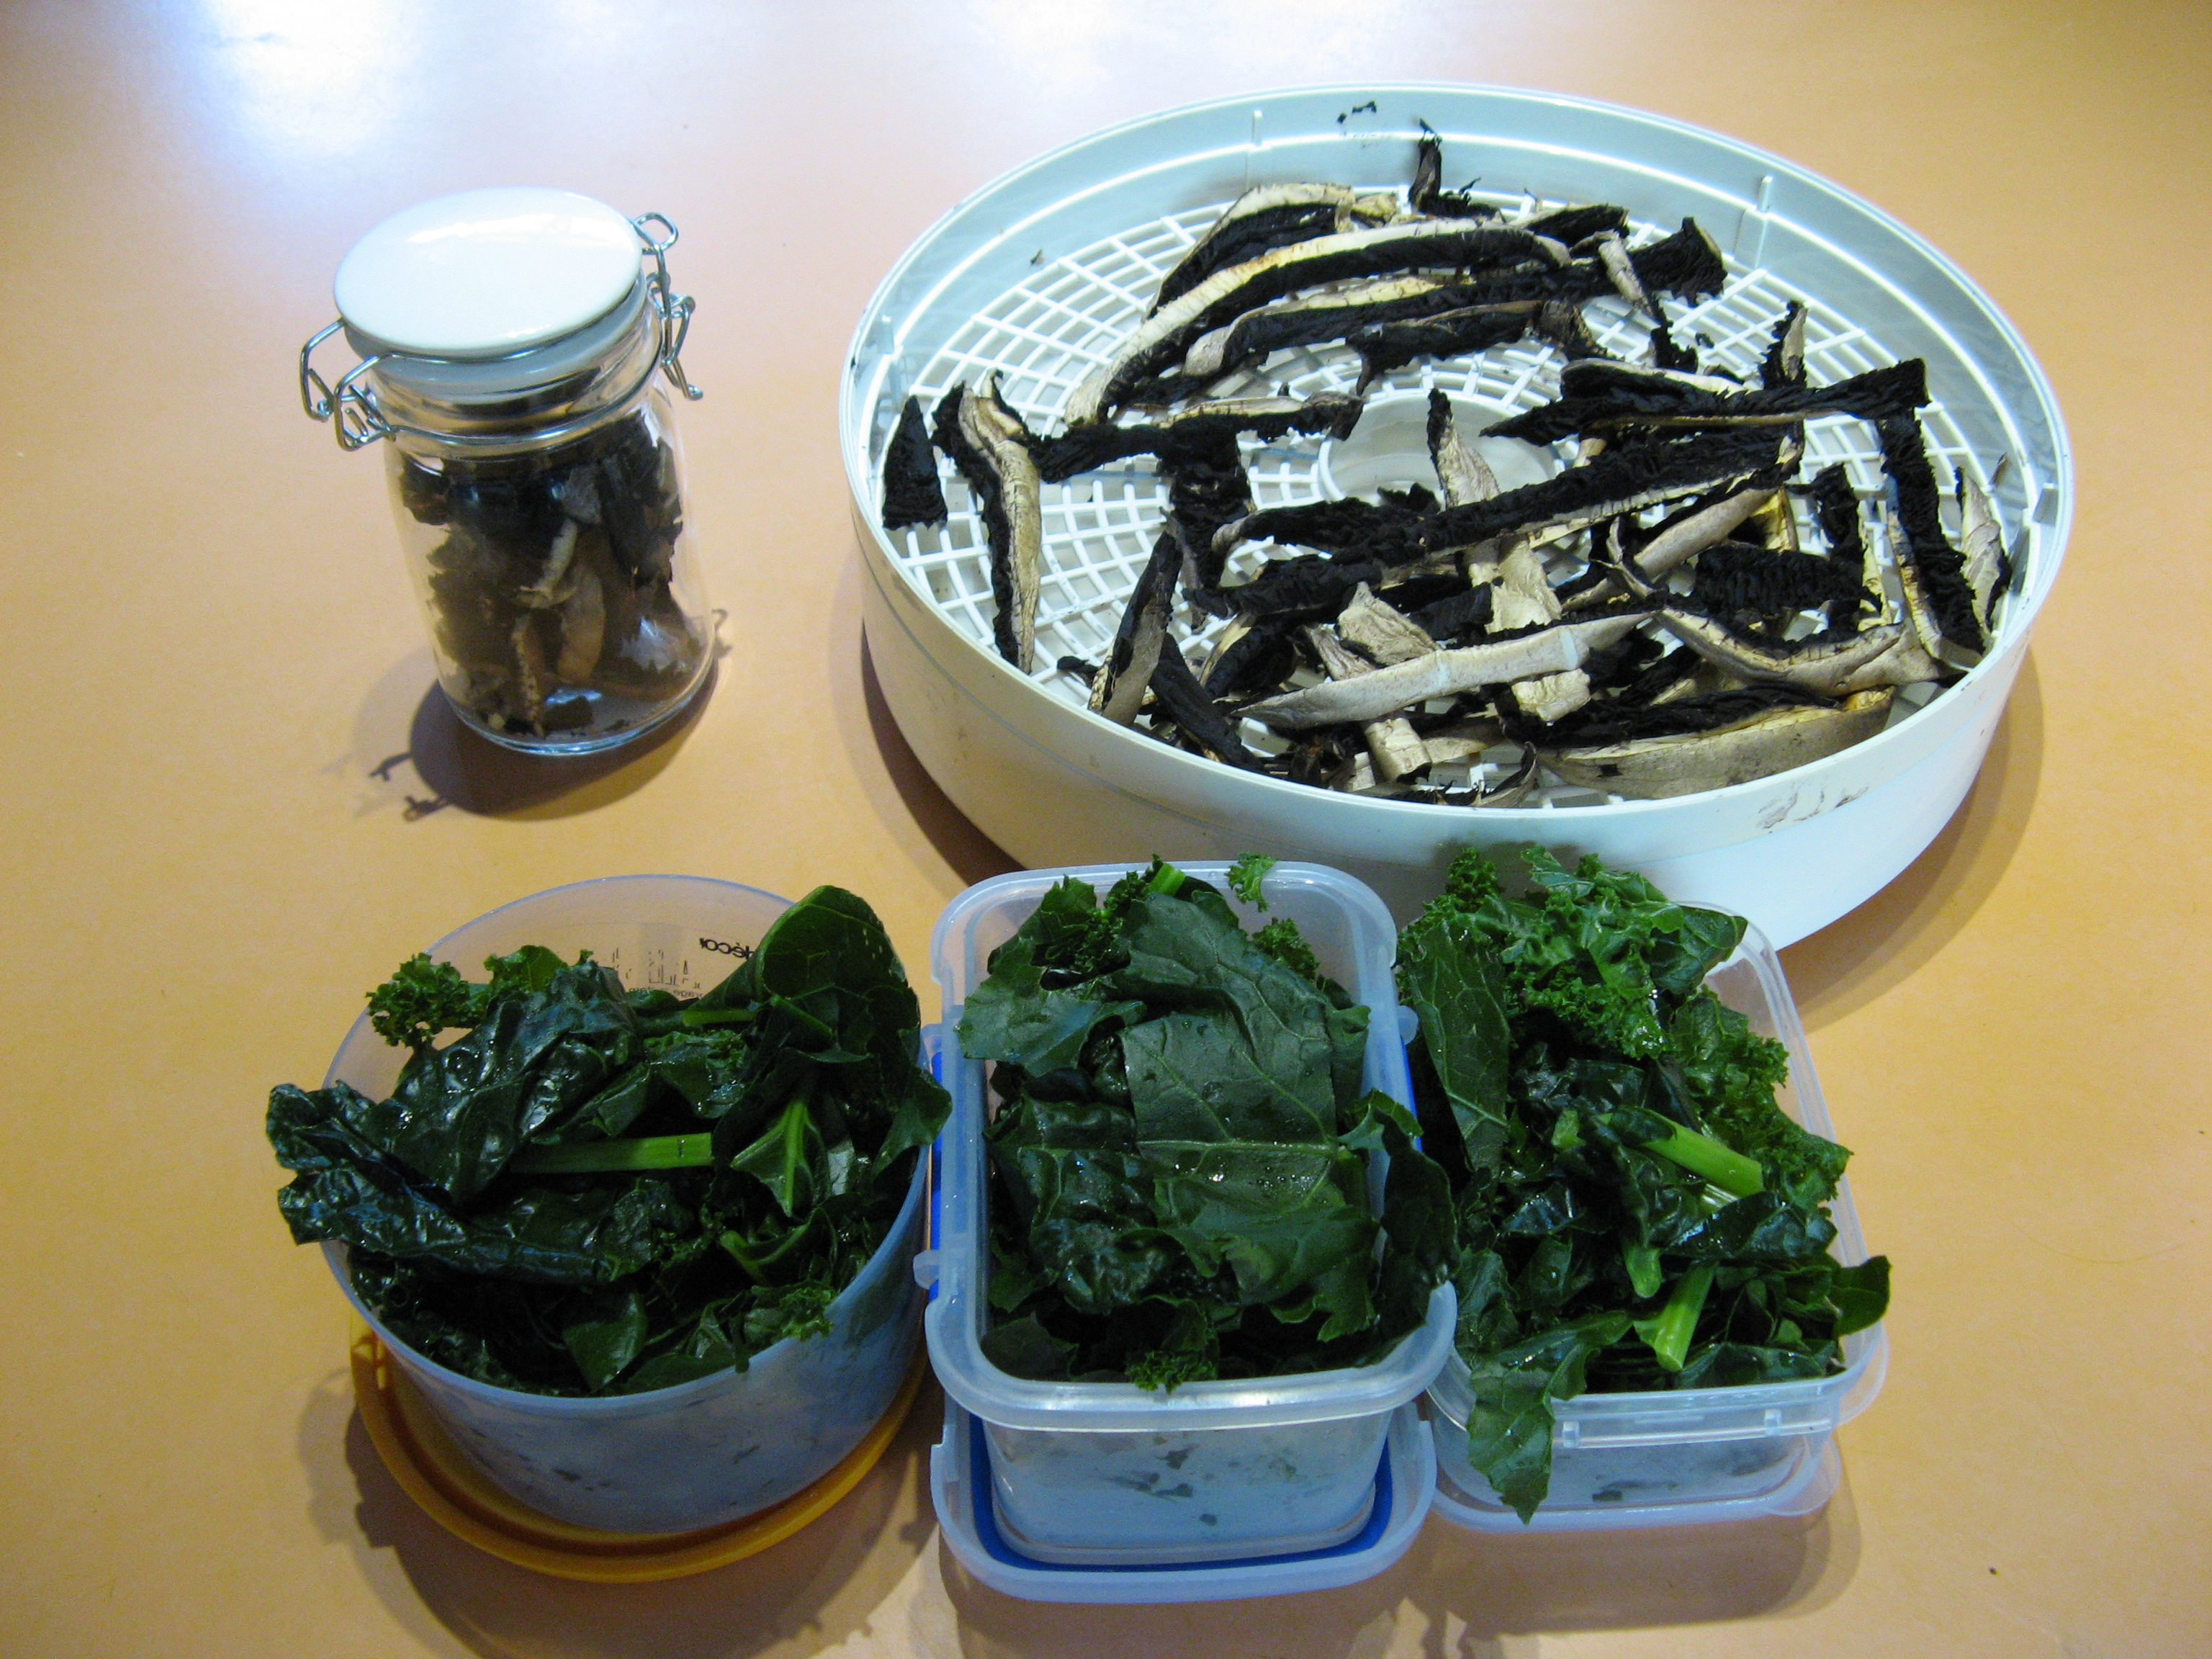 Steamed kale for the freezer, and dried mushrooms